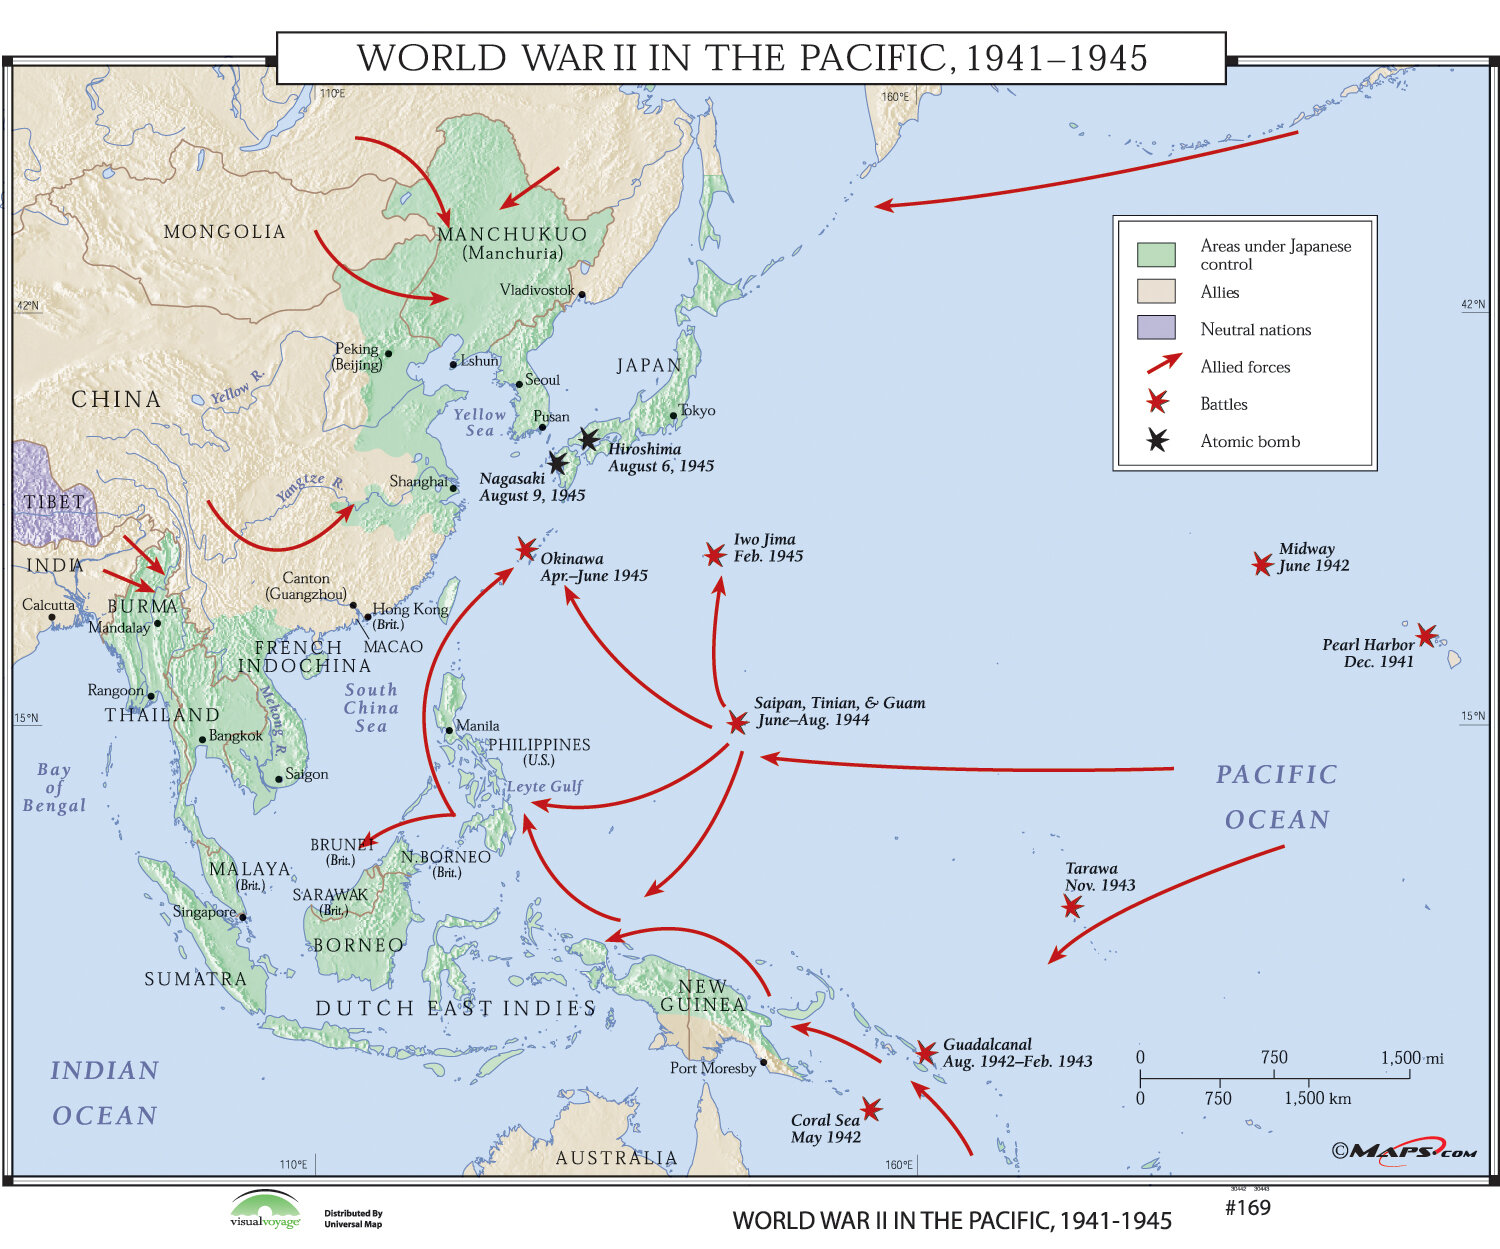 World History Wall Maps - World War II in the Pacific